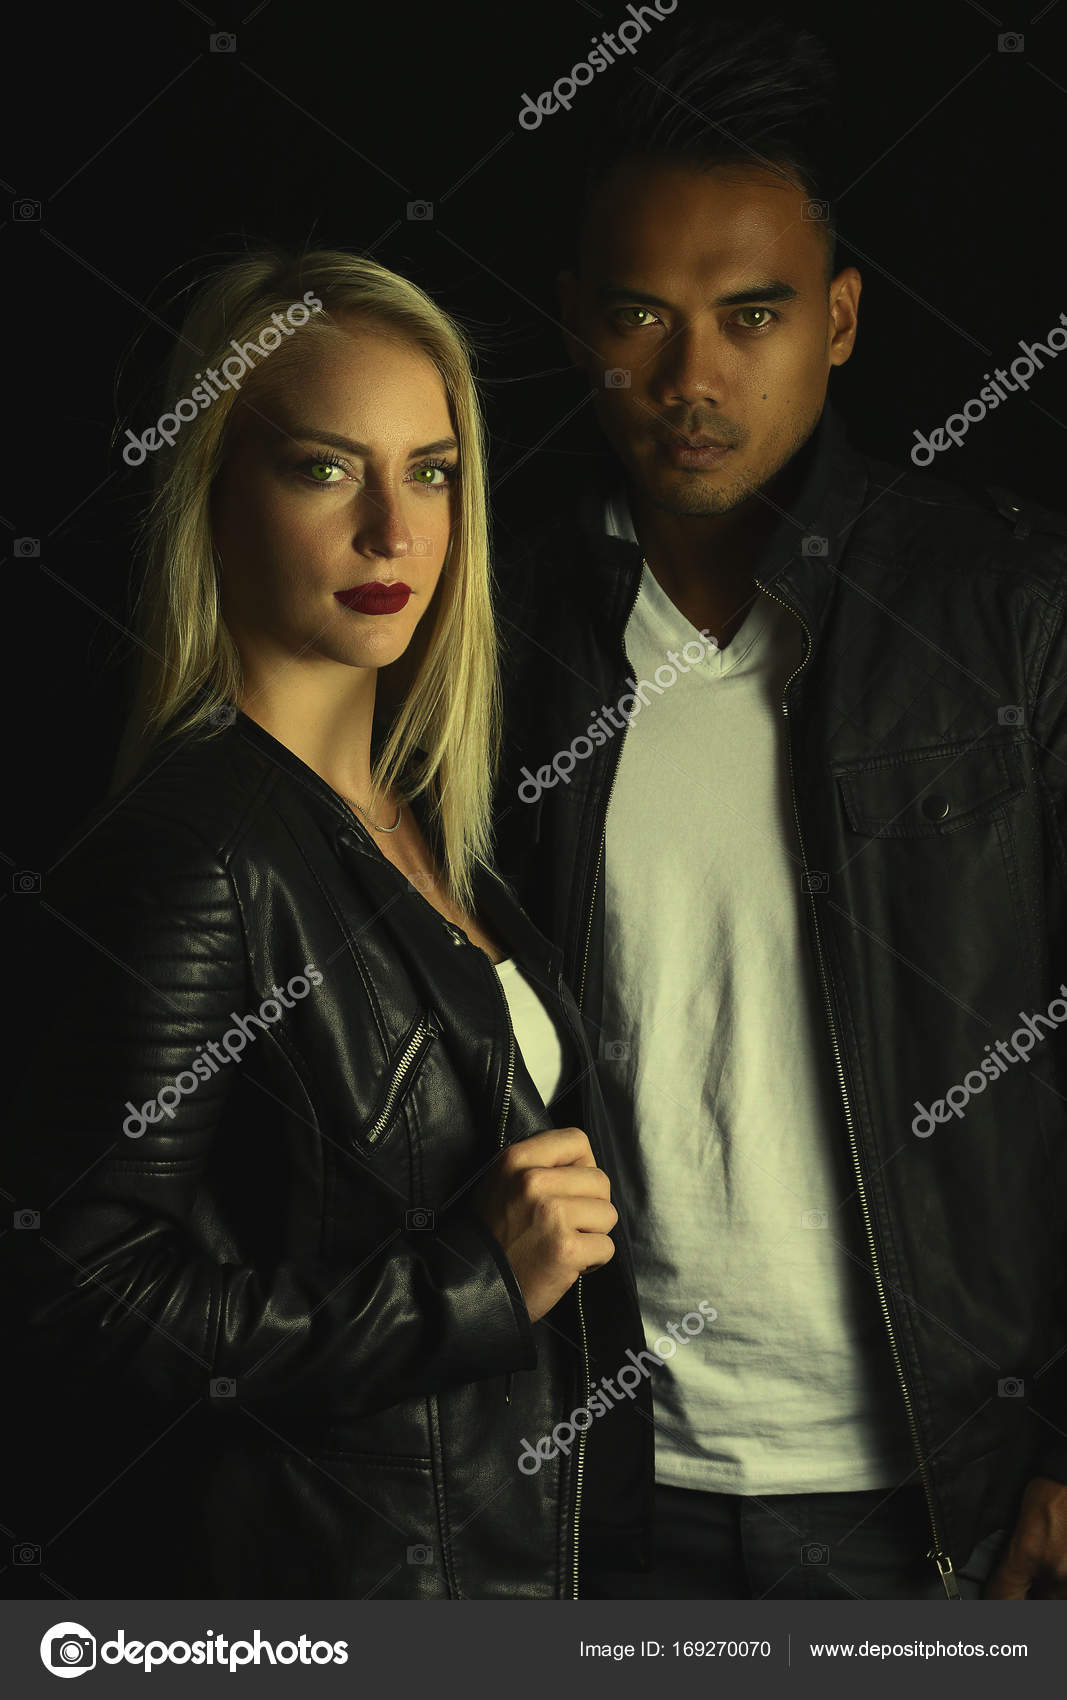 Book Cover Black Jacket ~ Book cover vampire novel attractive couple stock photo edit now